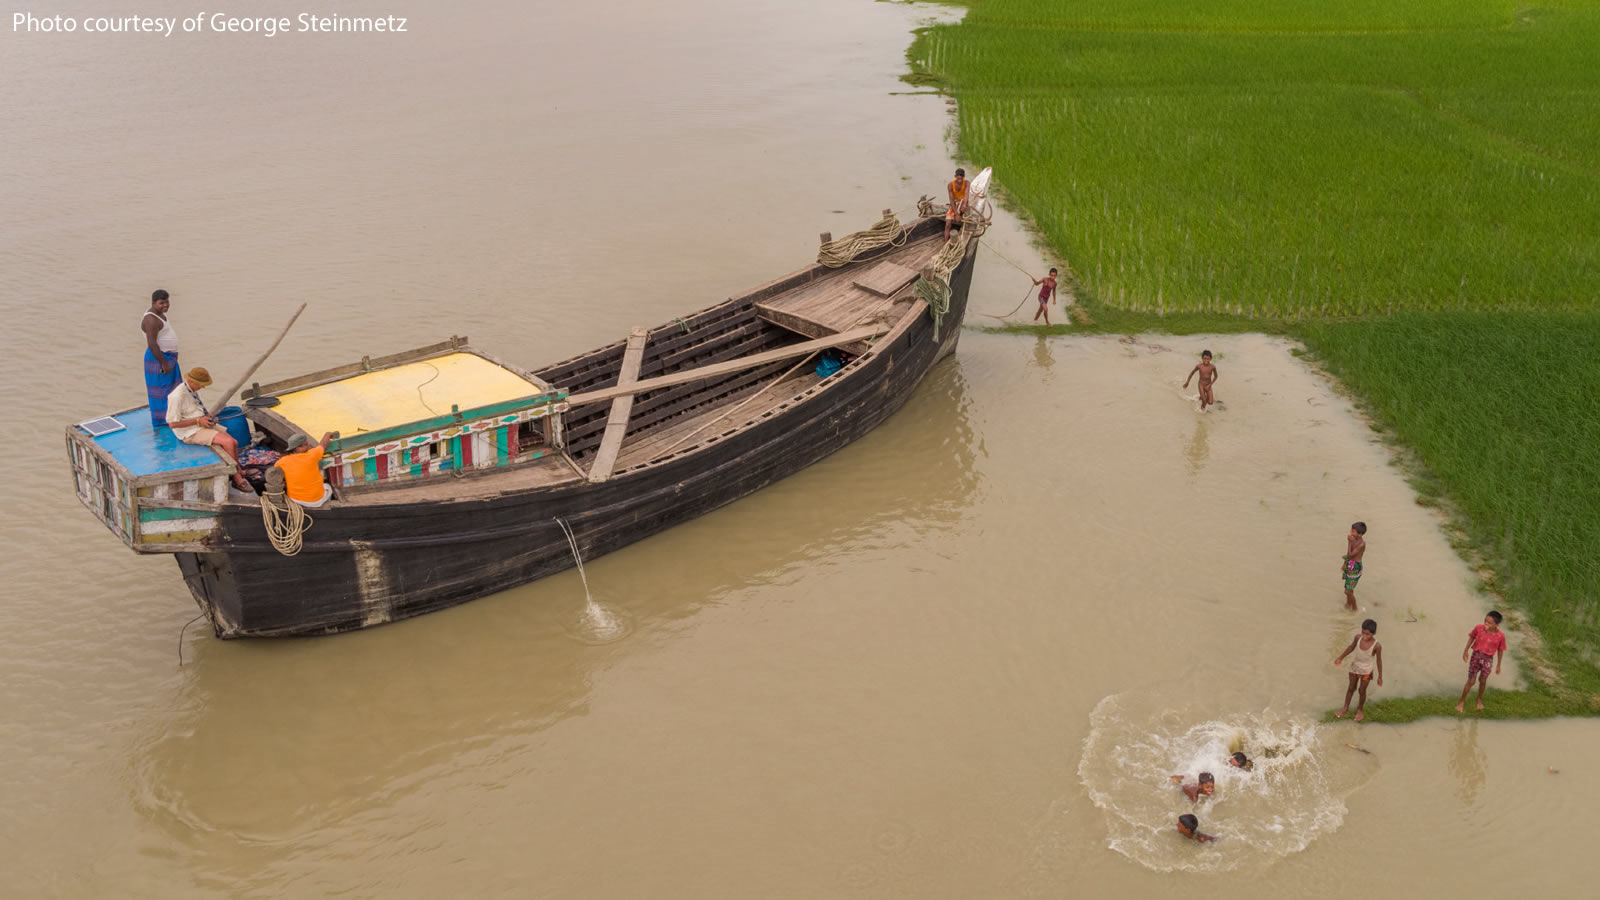 A boat with children swimming near rice paddies in Bangladesh